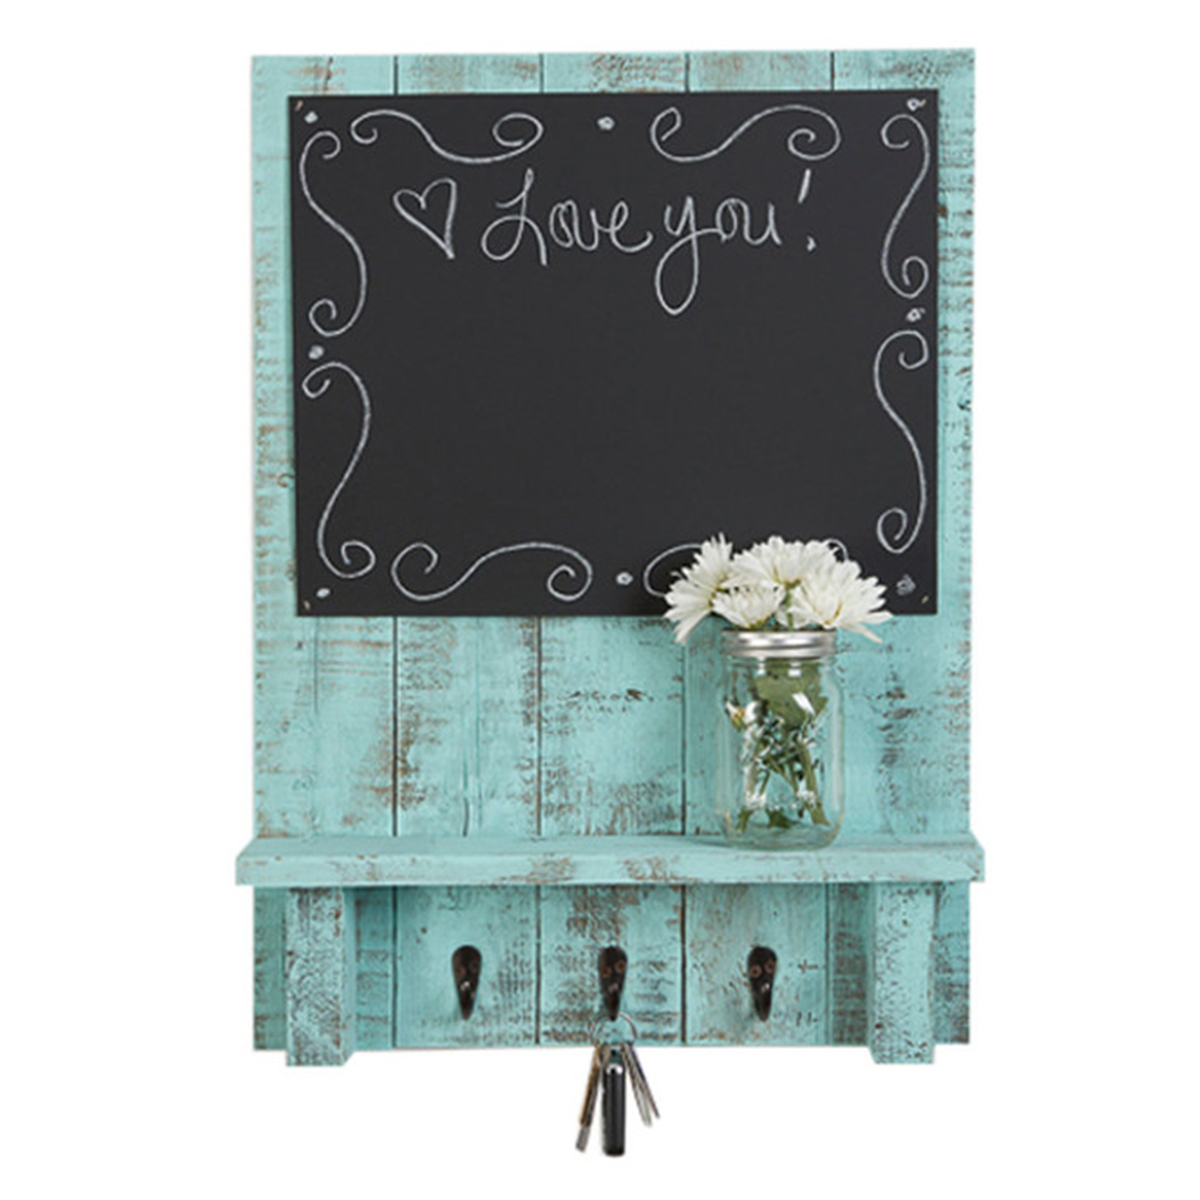 Blue rustic chalkboard made with distressed wood and hooks to hang keys. photo